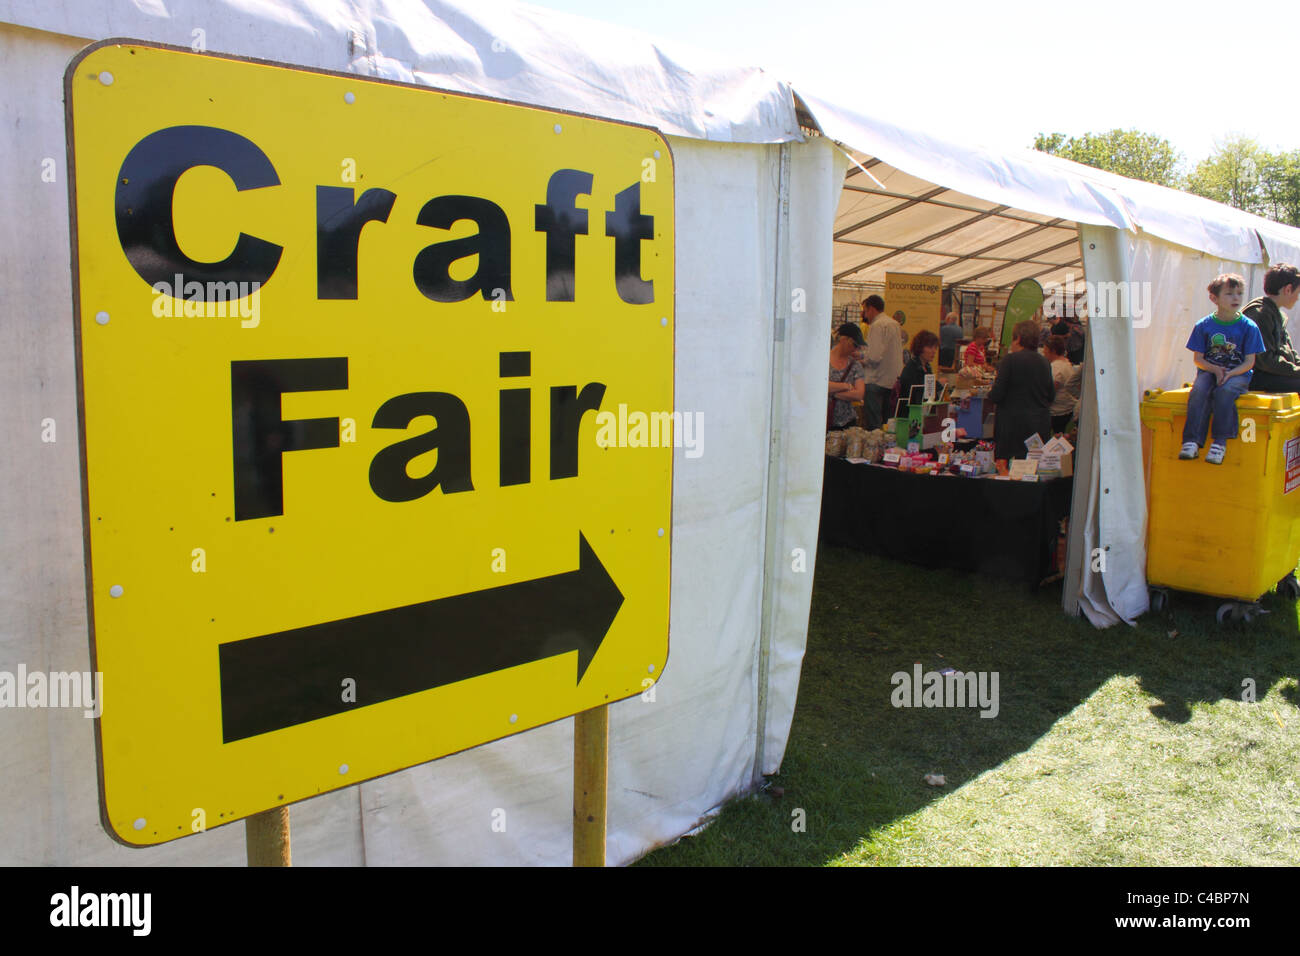 Large sign at entrance to Craft Fair at a local fete, Antrim, Northern Ireland - Stock Image